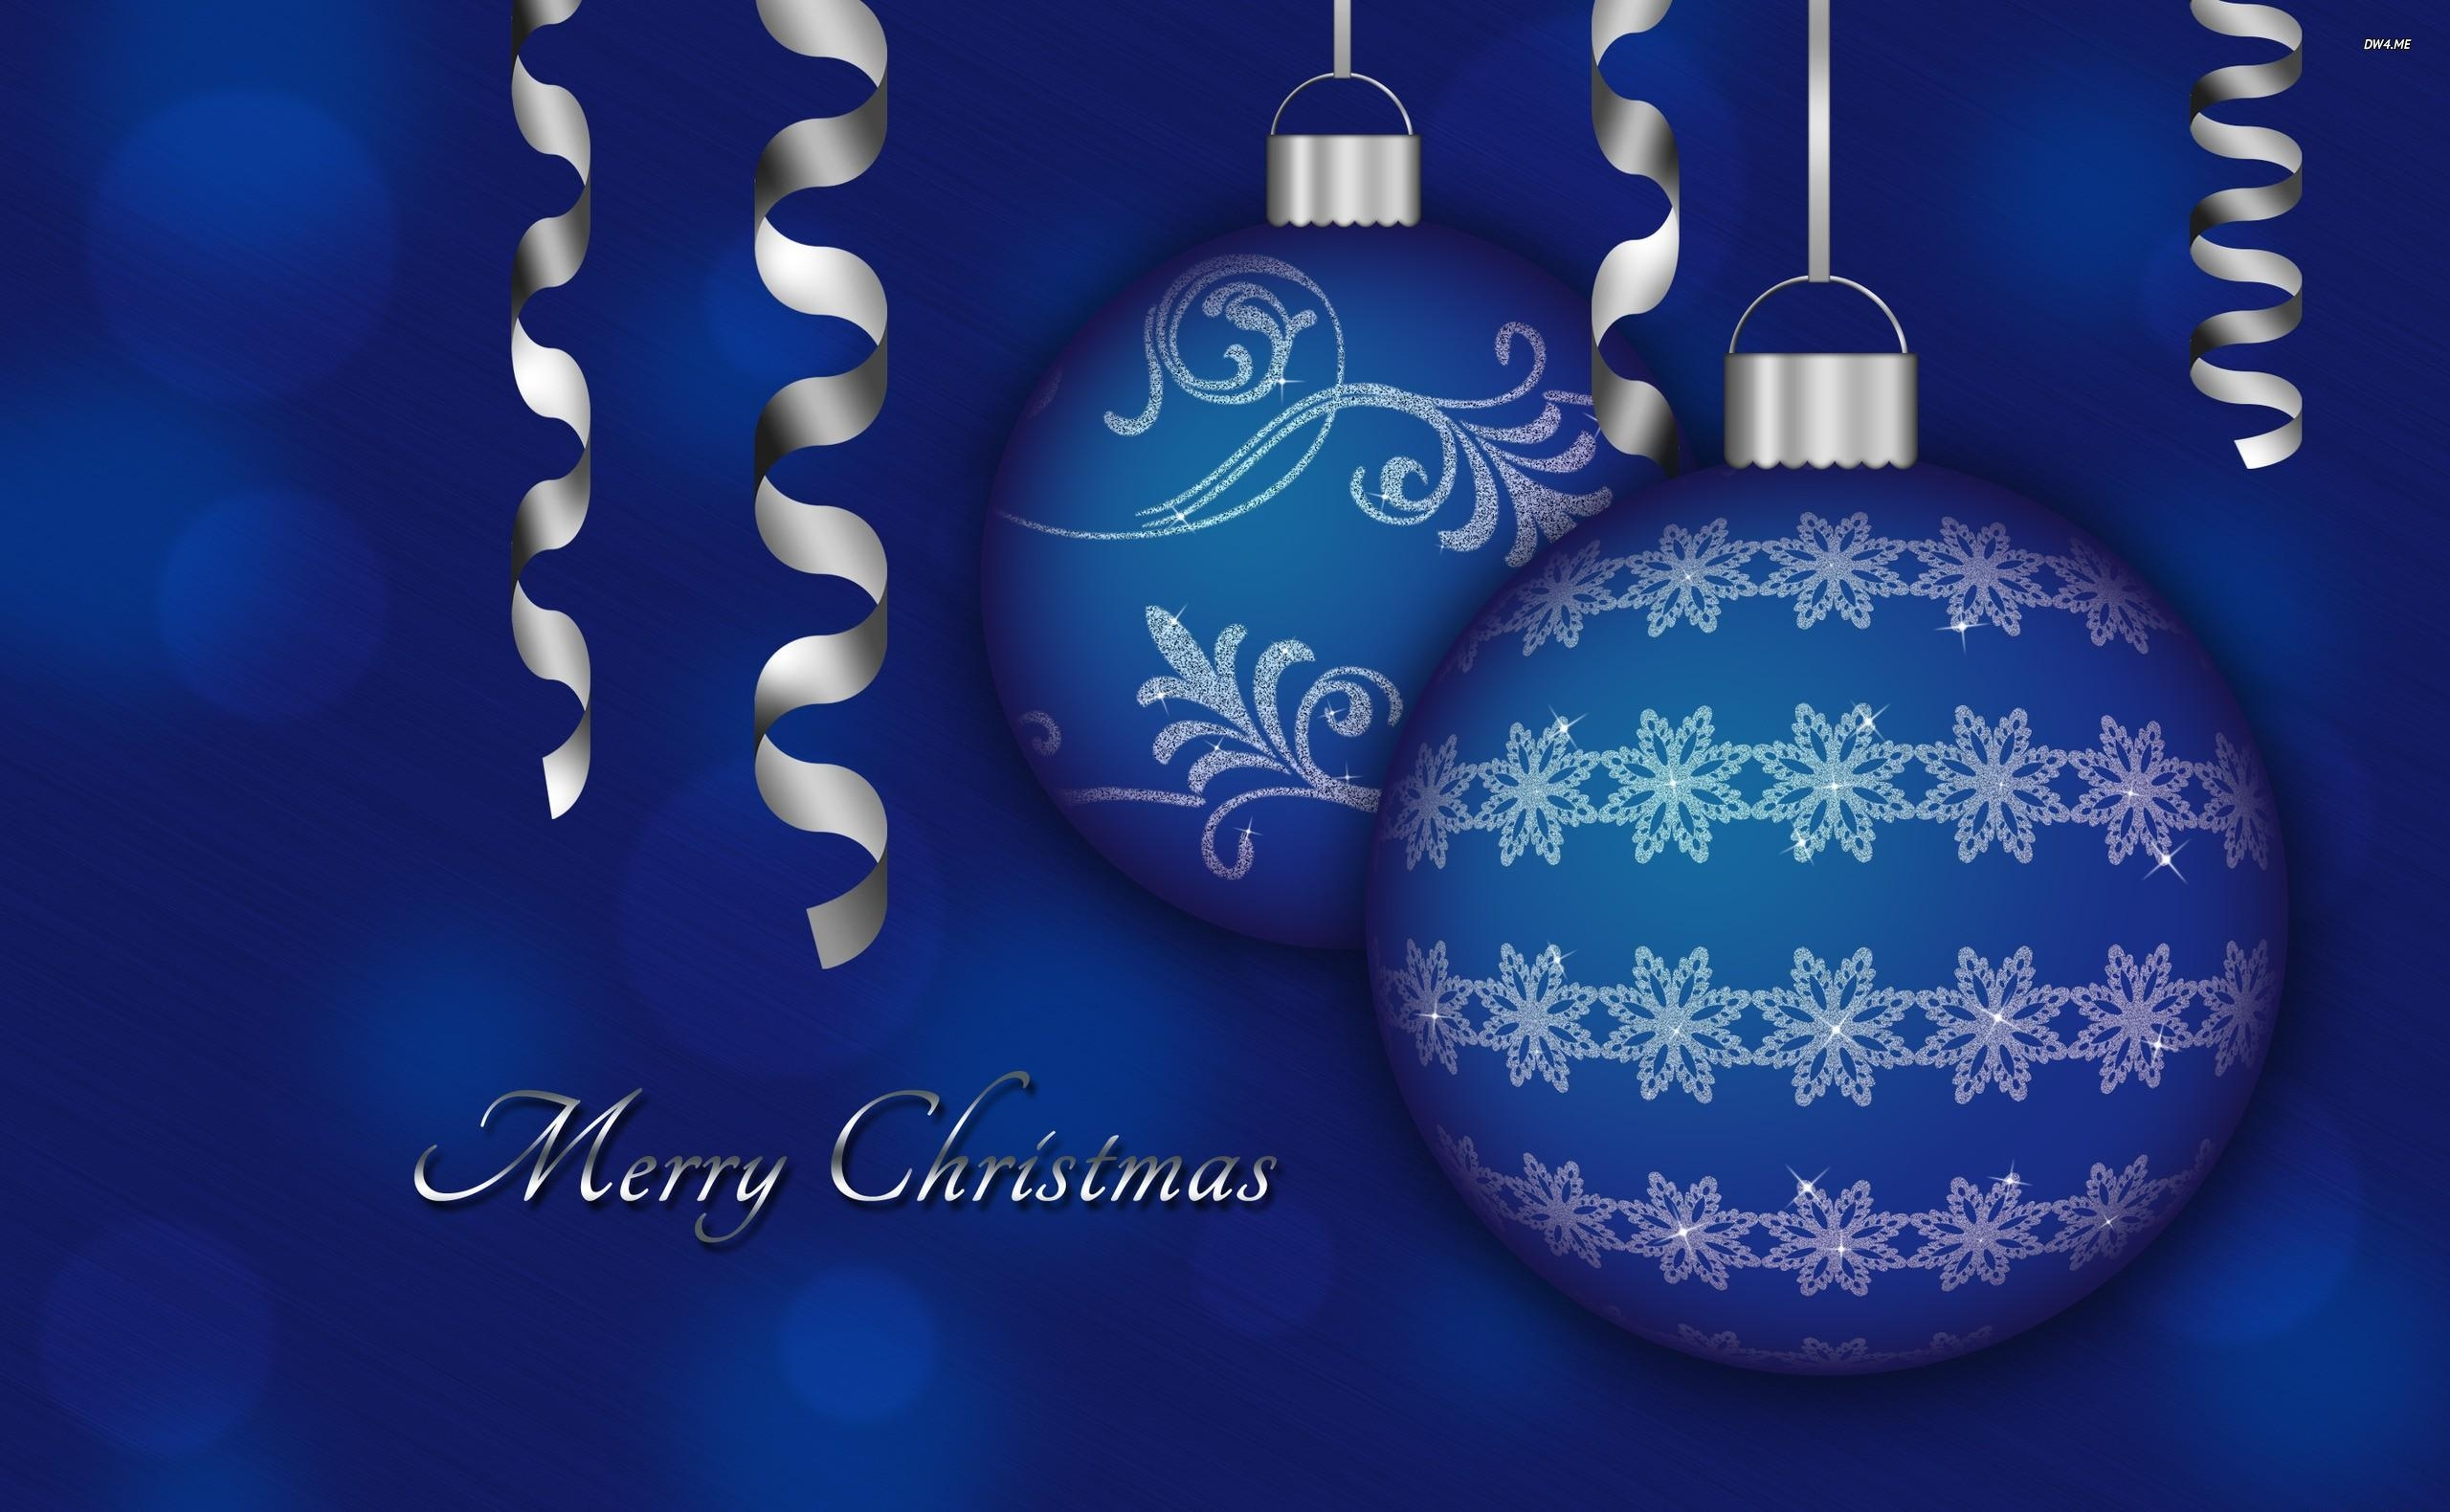 51247 download wallpaper Holidays, Christmas Decorations, Christmas Tree Toys, Balls, Couple, Pair, Tape, Christmas screensavers and pictures for free